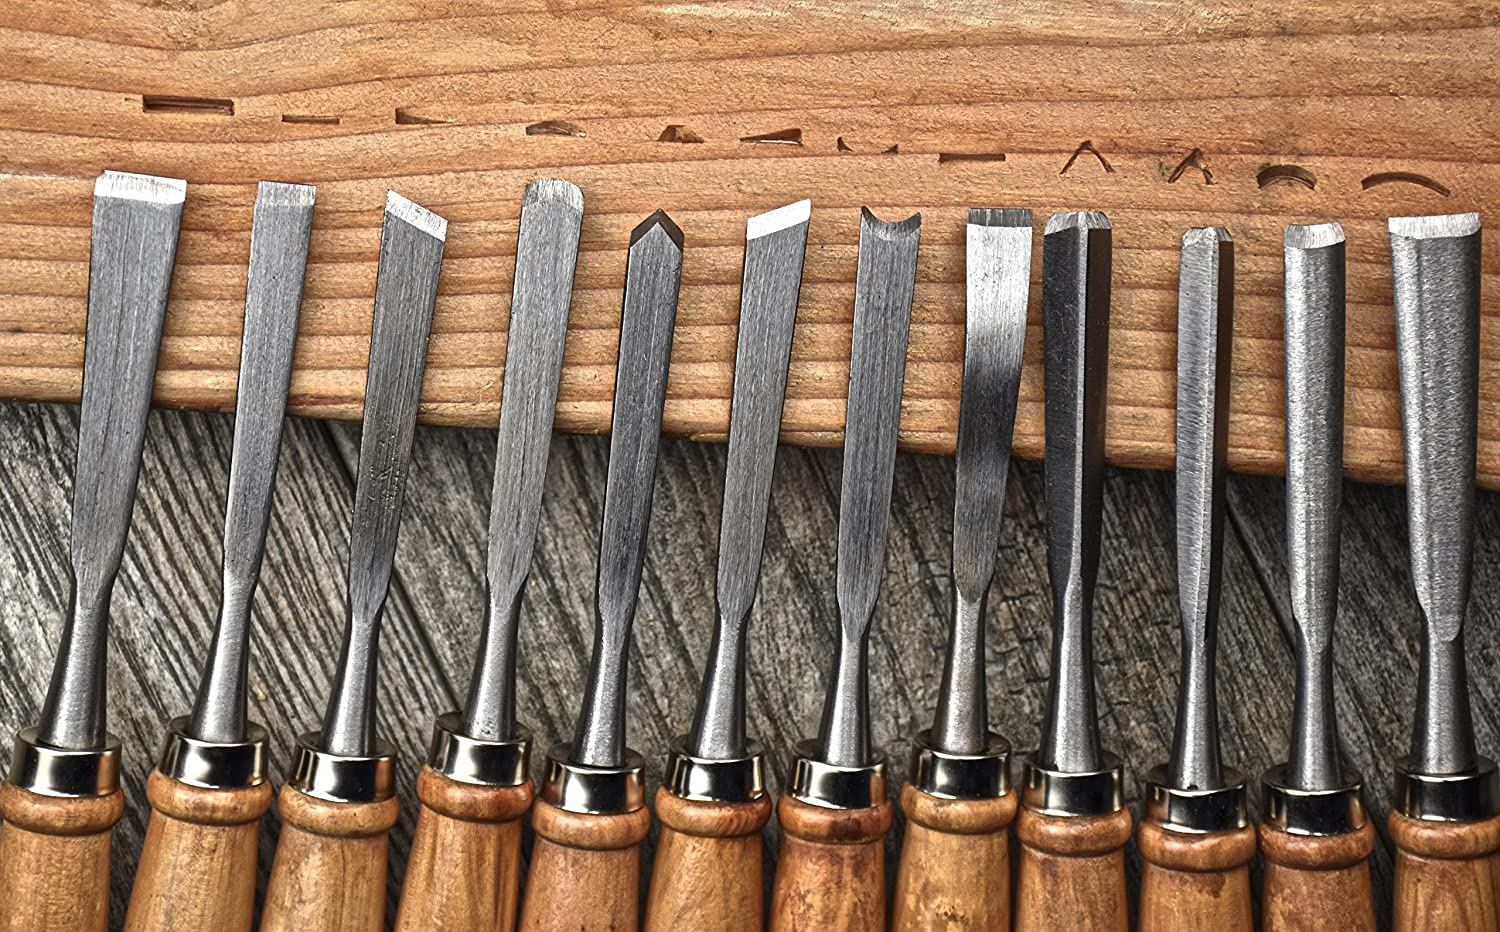 wood carving tools, Top 10 Wood Carving Tools Set, Wood Carving Tools